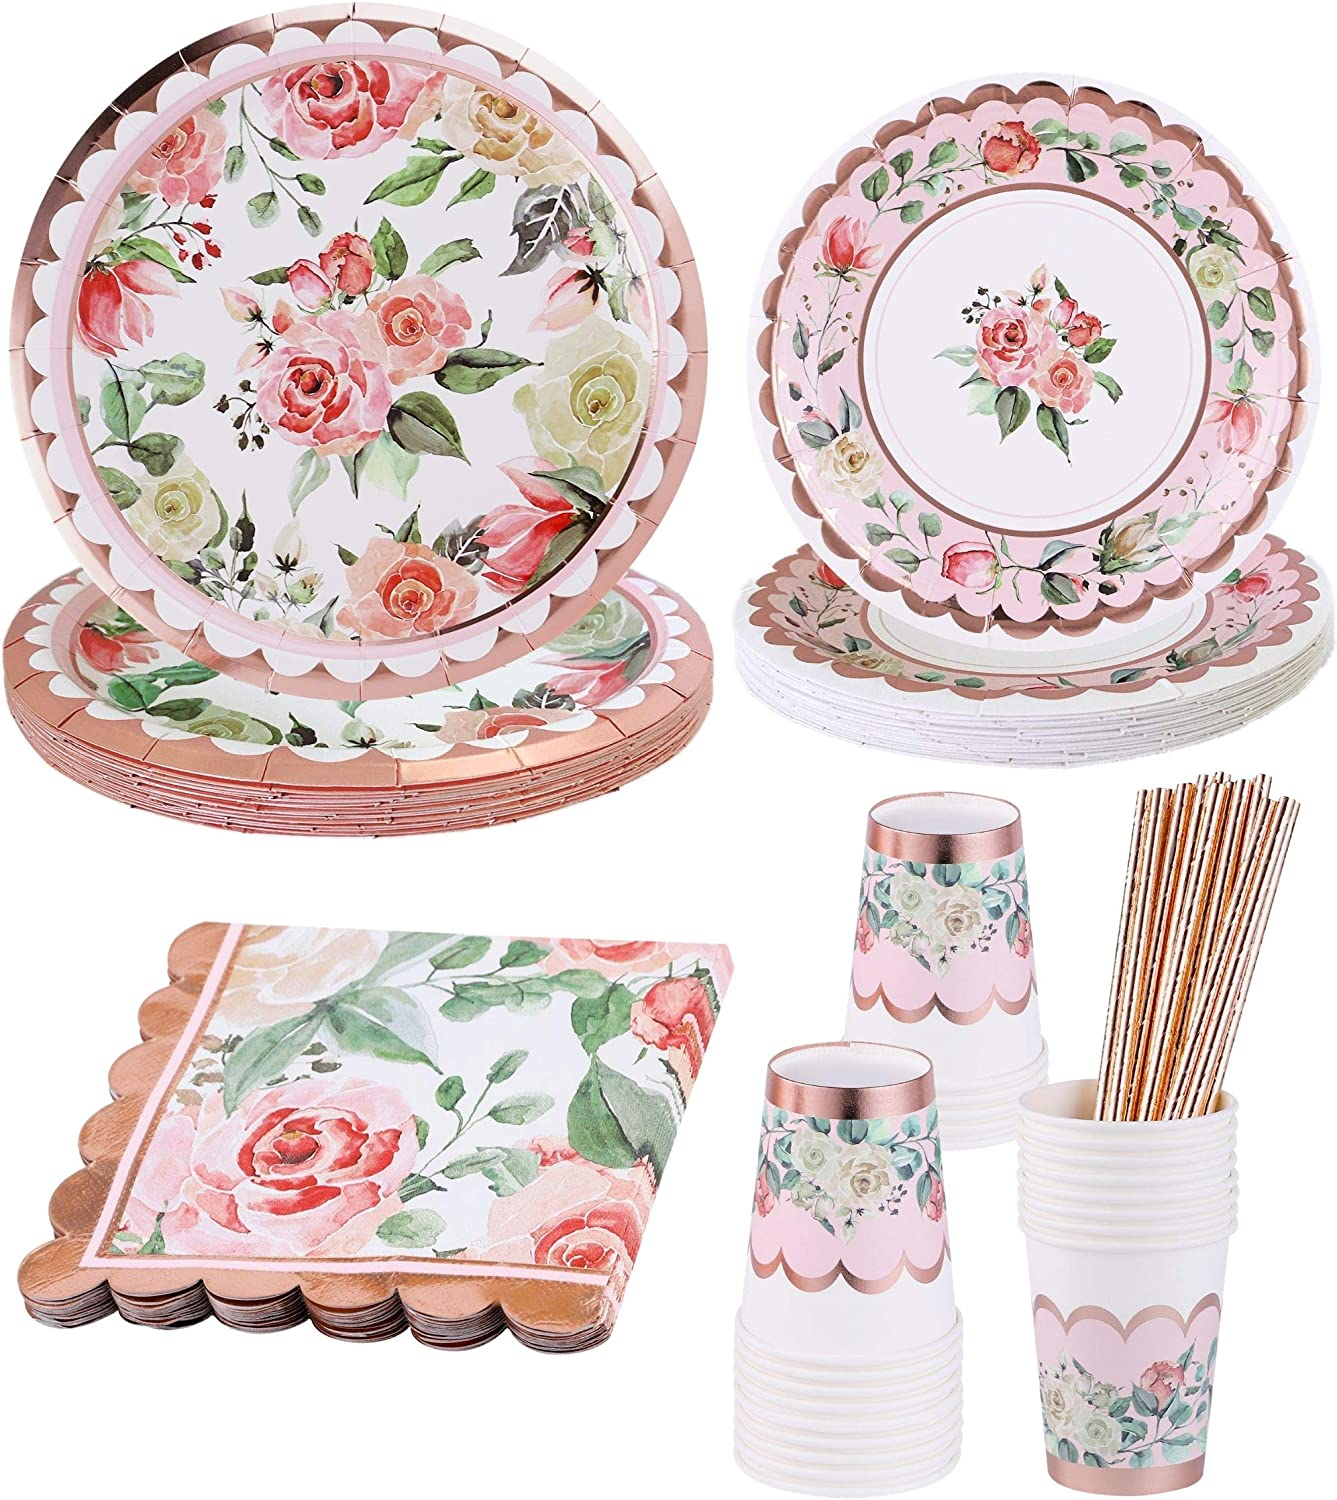 Vintage Floral Party Supplies Rose Gold– Serves 16 – Includes Floral Paper Plates Cups Napkins Straws for Baby Shower Plates Bridal Shower Wedding Shower Flower Birthday Decorations Garden Tea Party